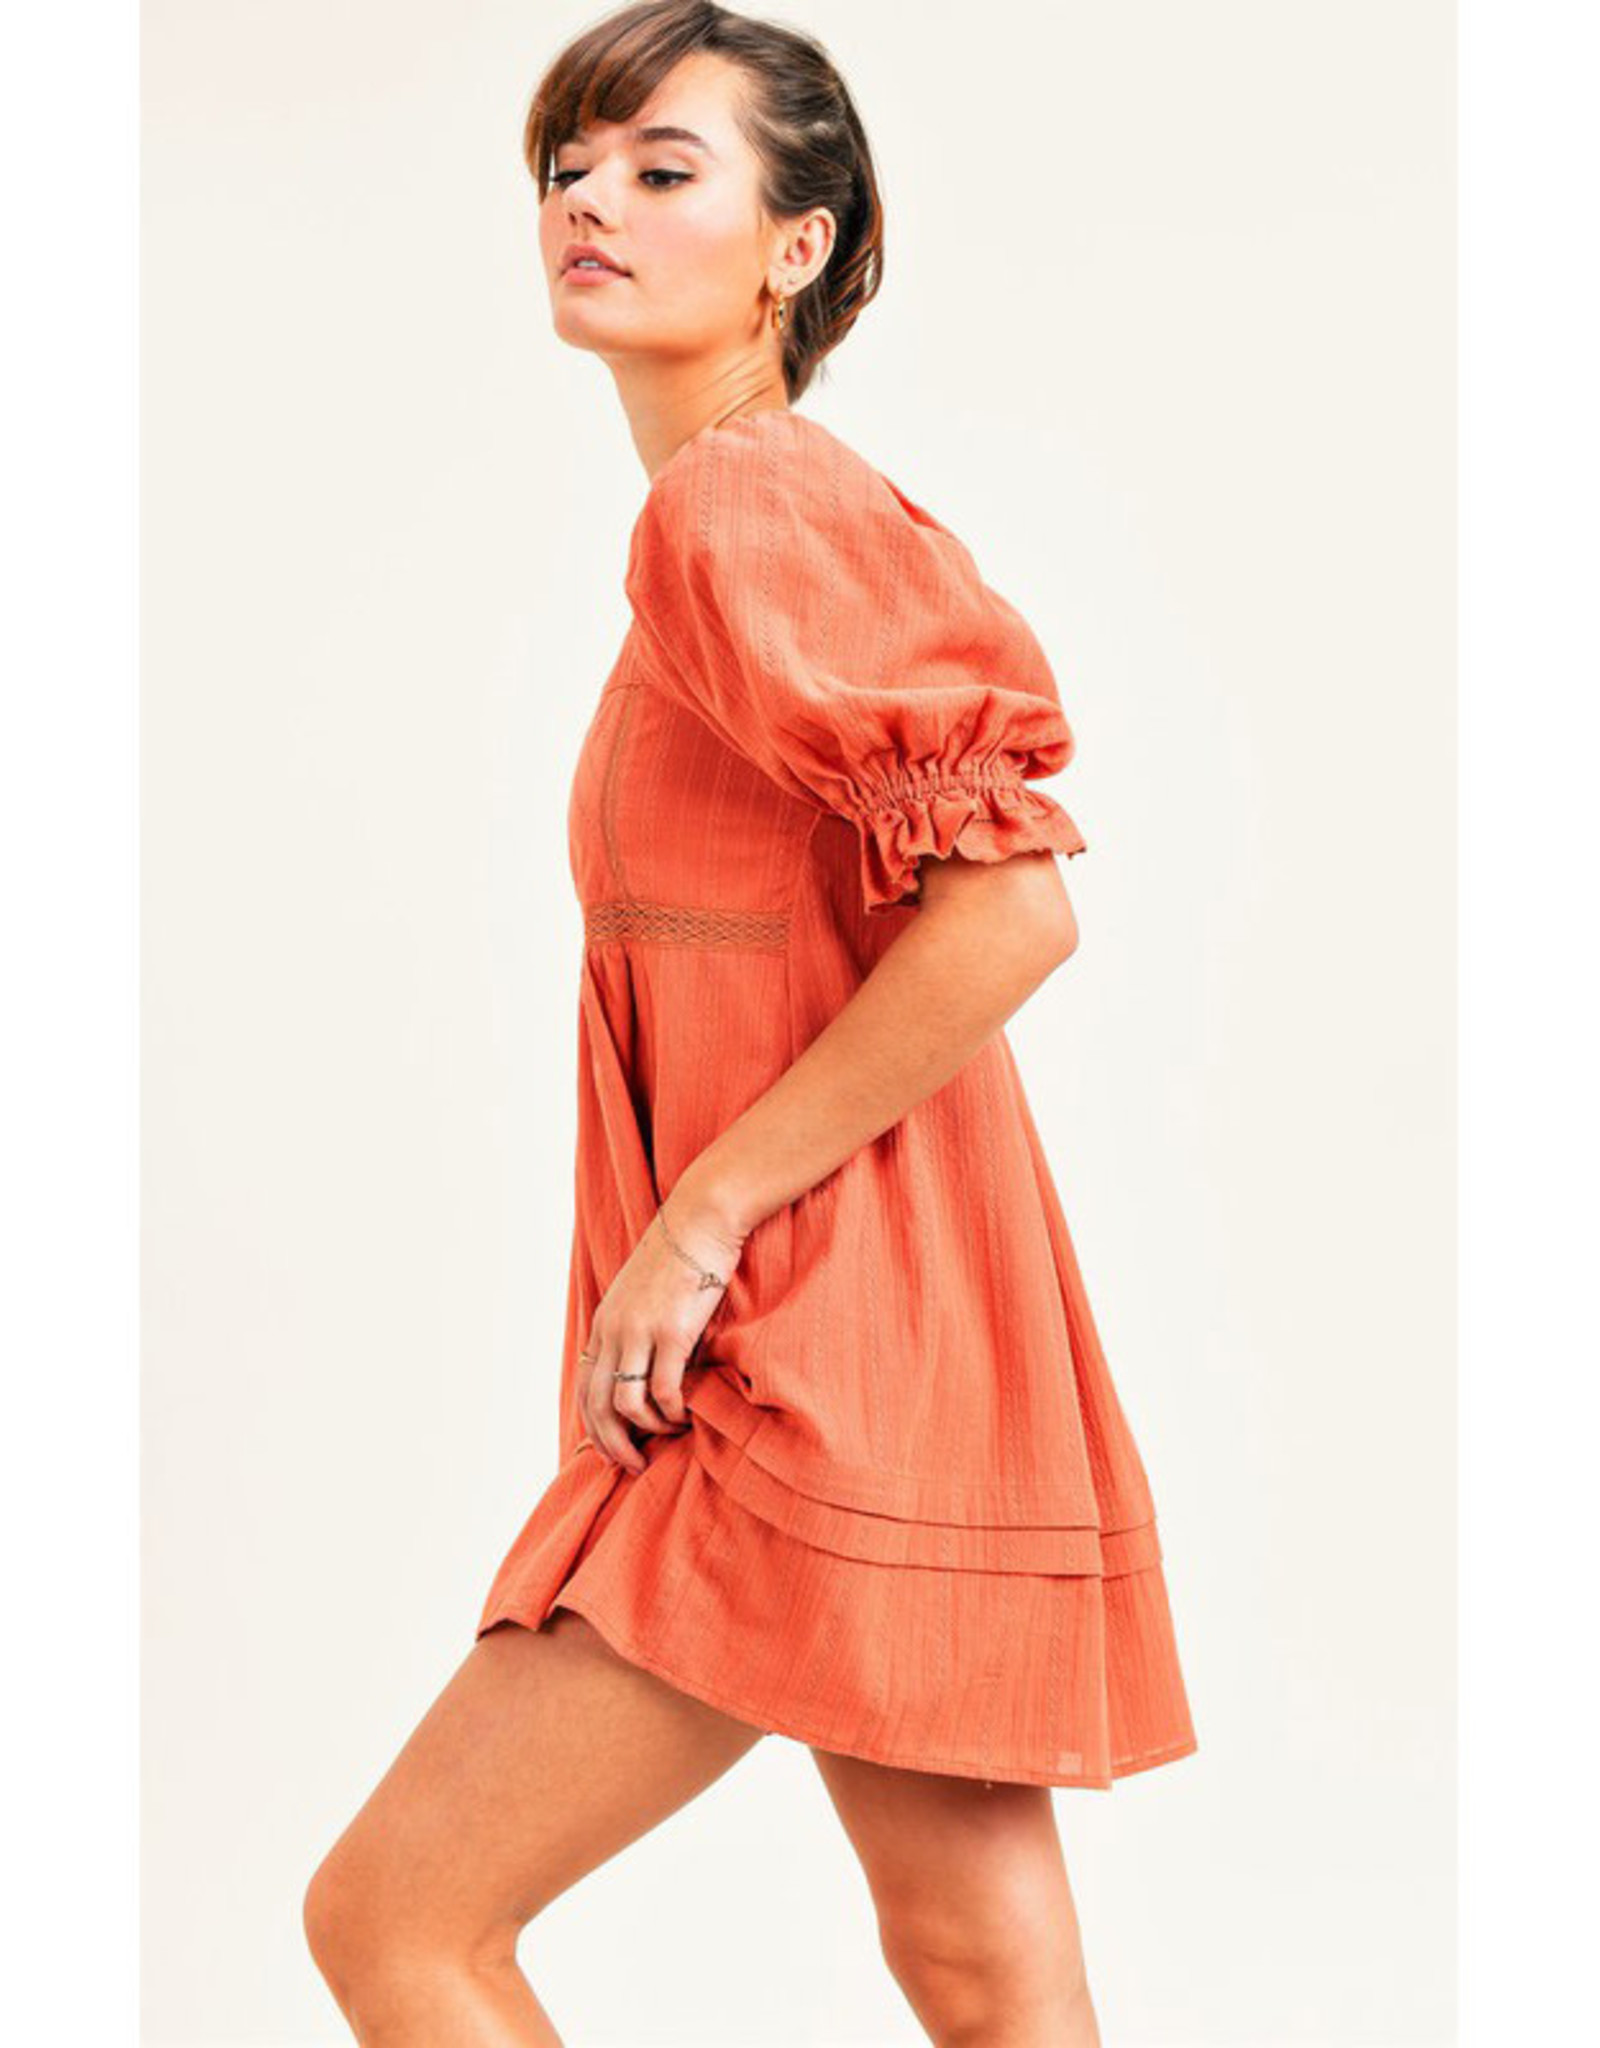 Jane + One Persimmon Embroidered Mini Dress